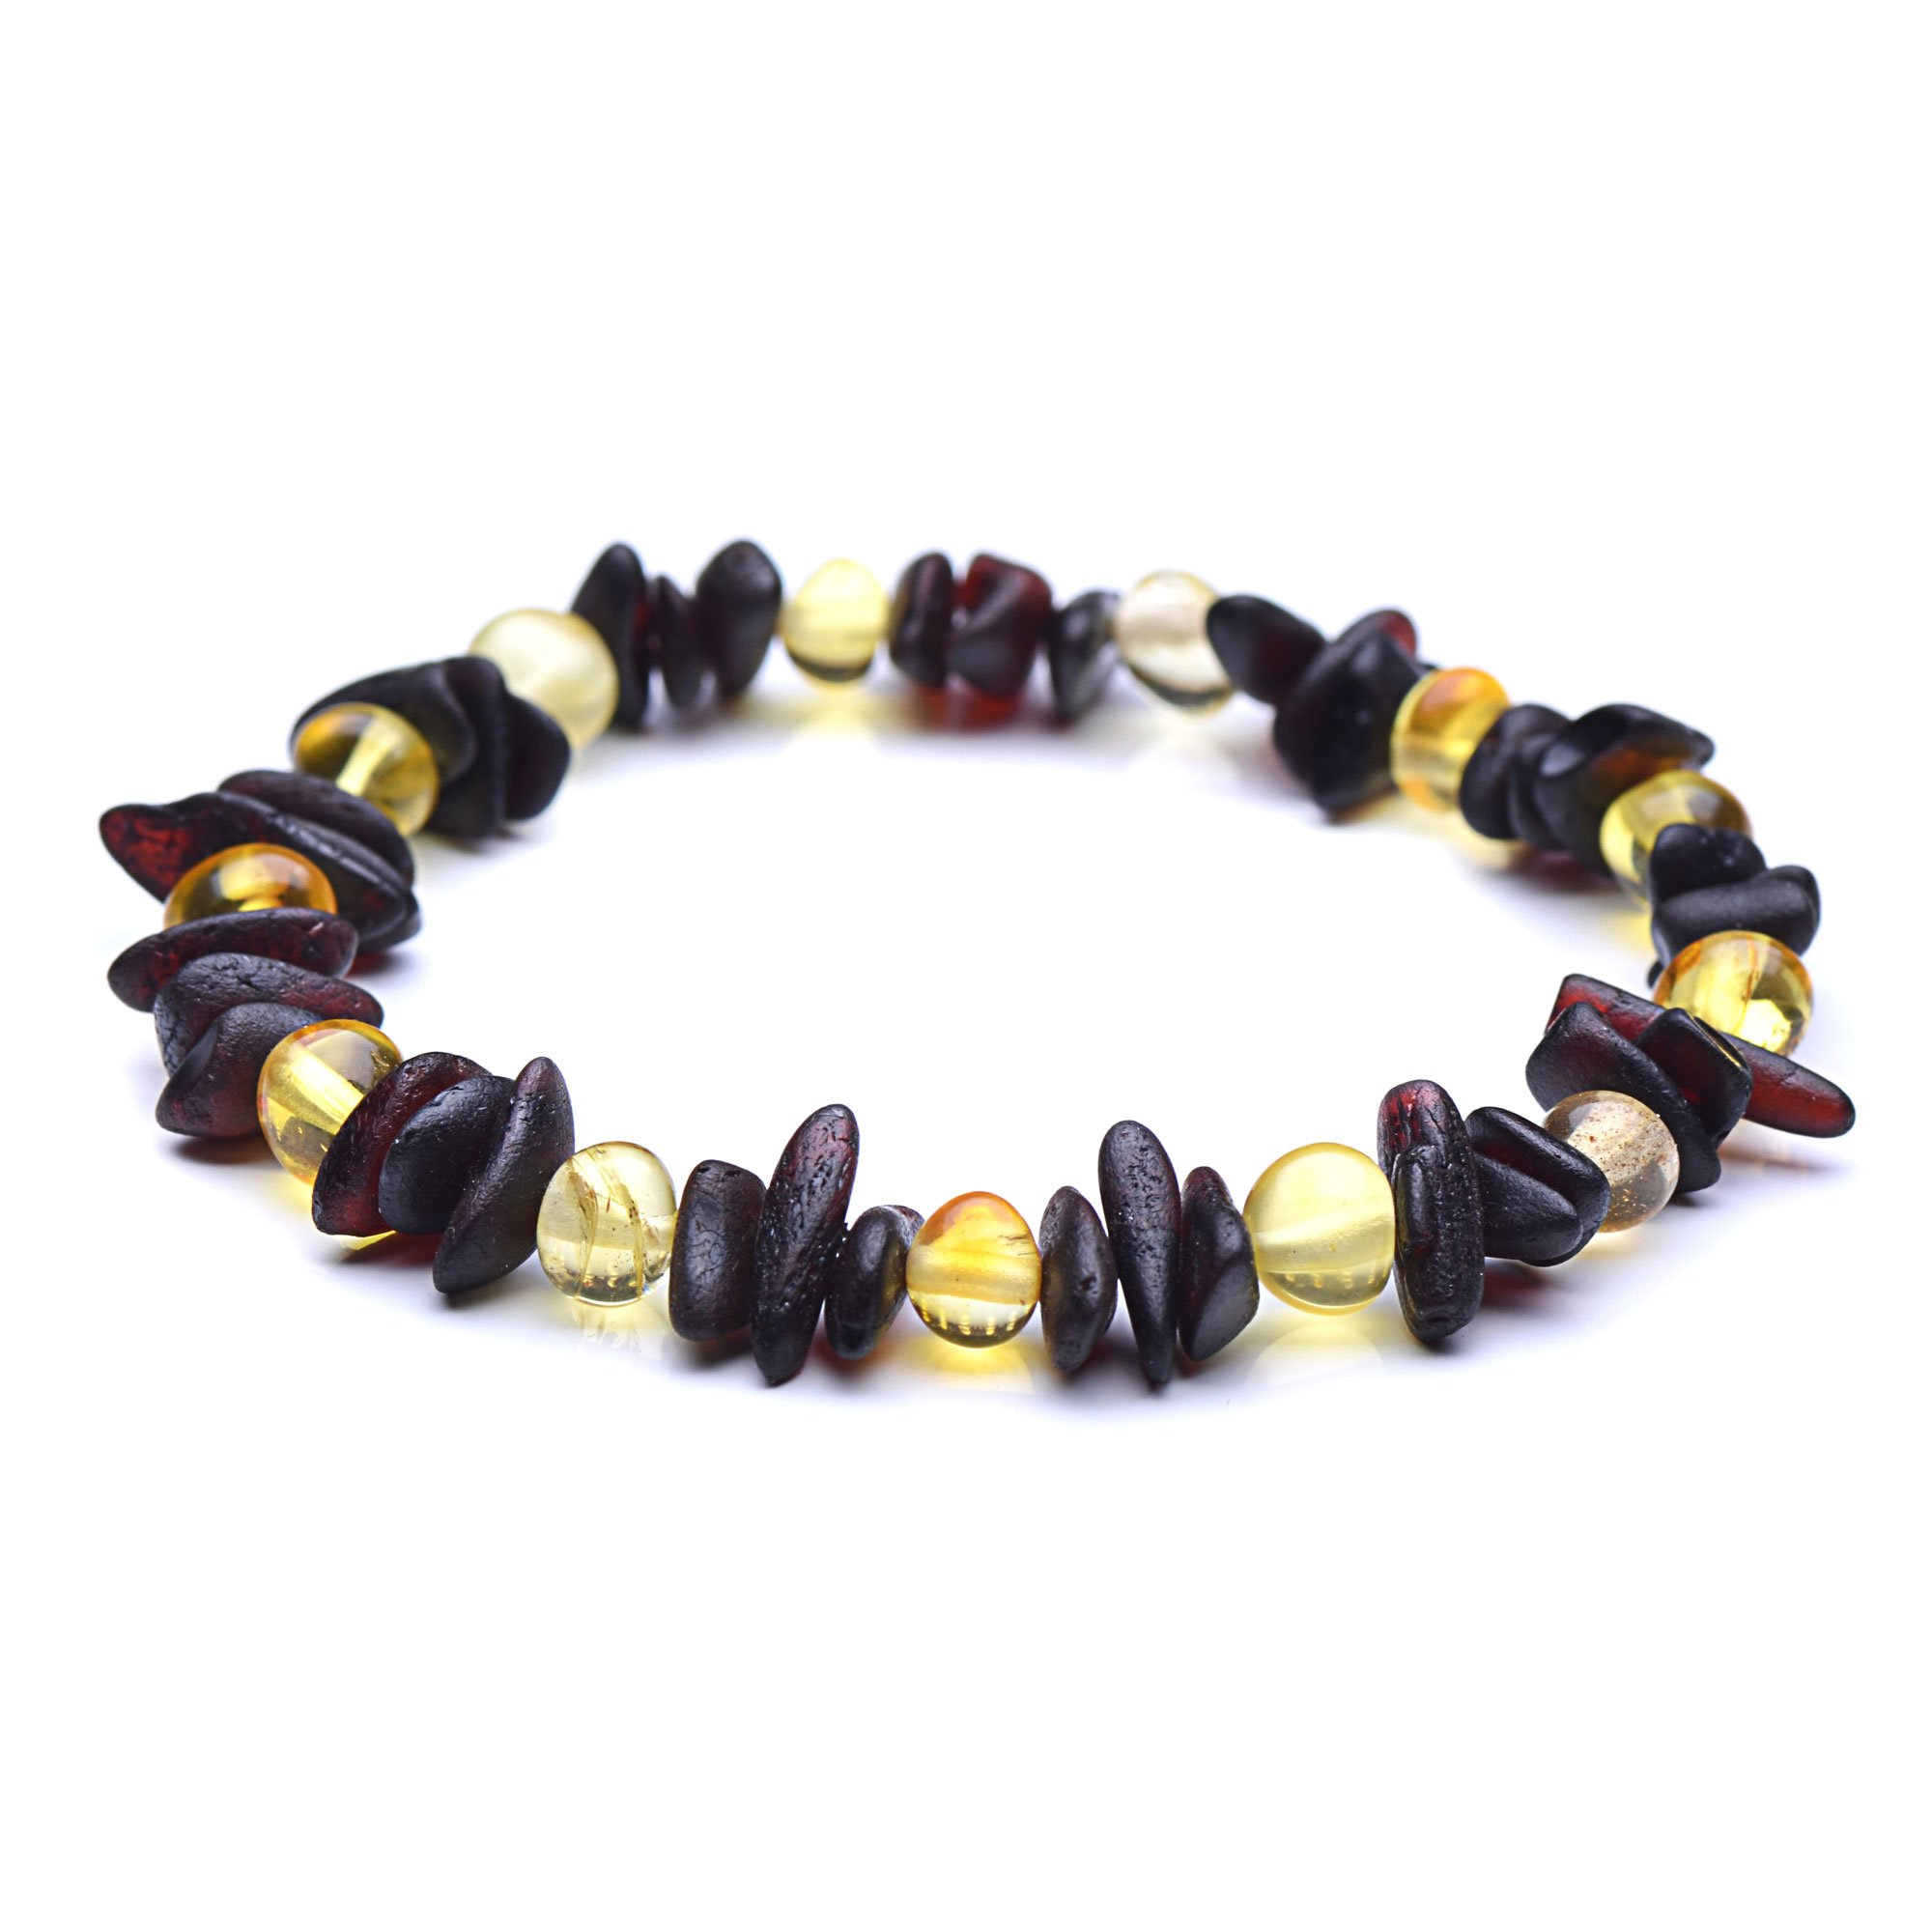 A Unique Baltic Amber Bracelet for Woman - 3 Sizes to Choose - Authentic Baltic Amber (7.8inches) by Genuine Amber